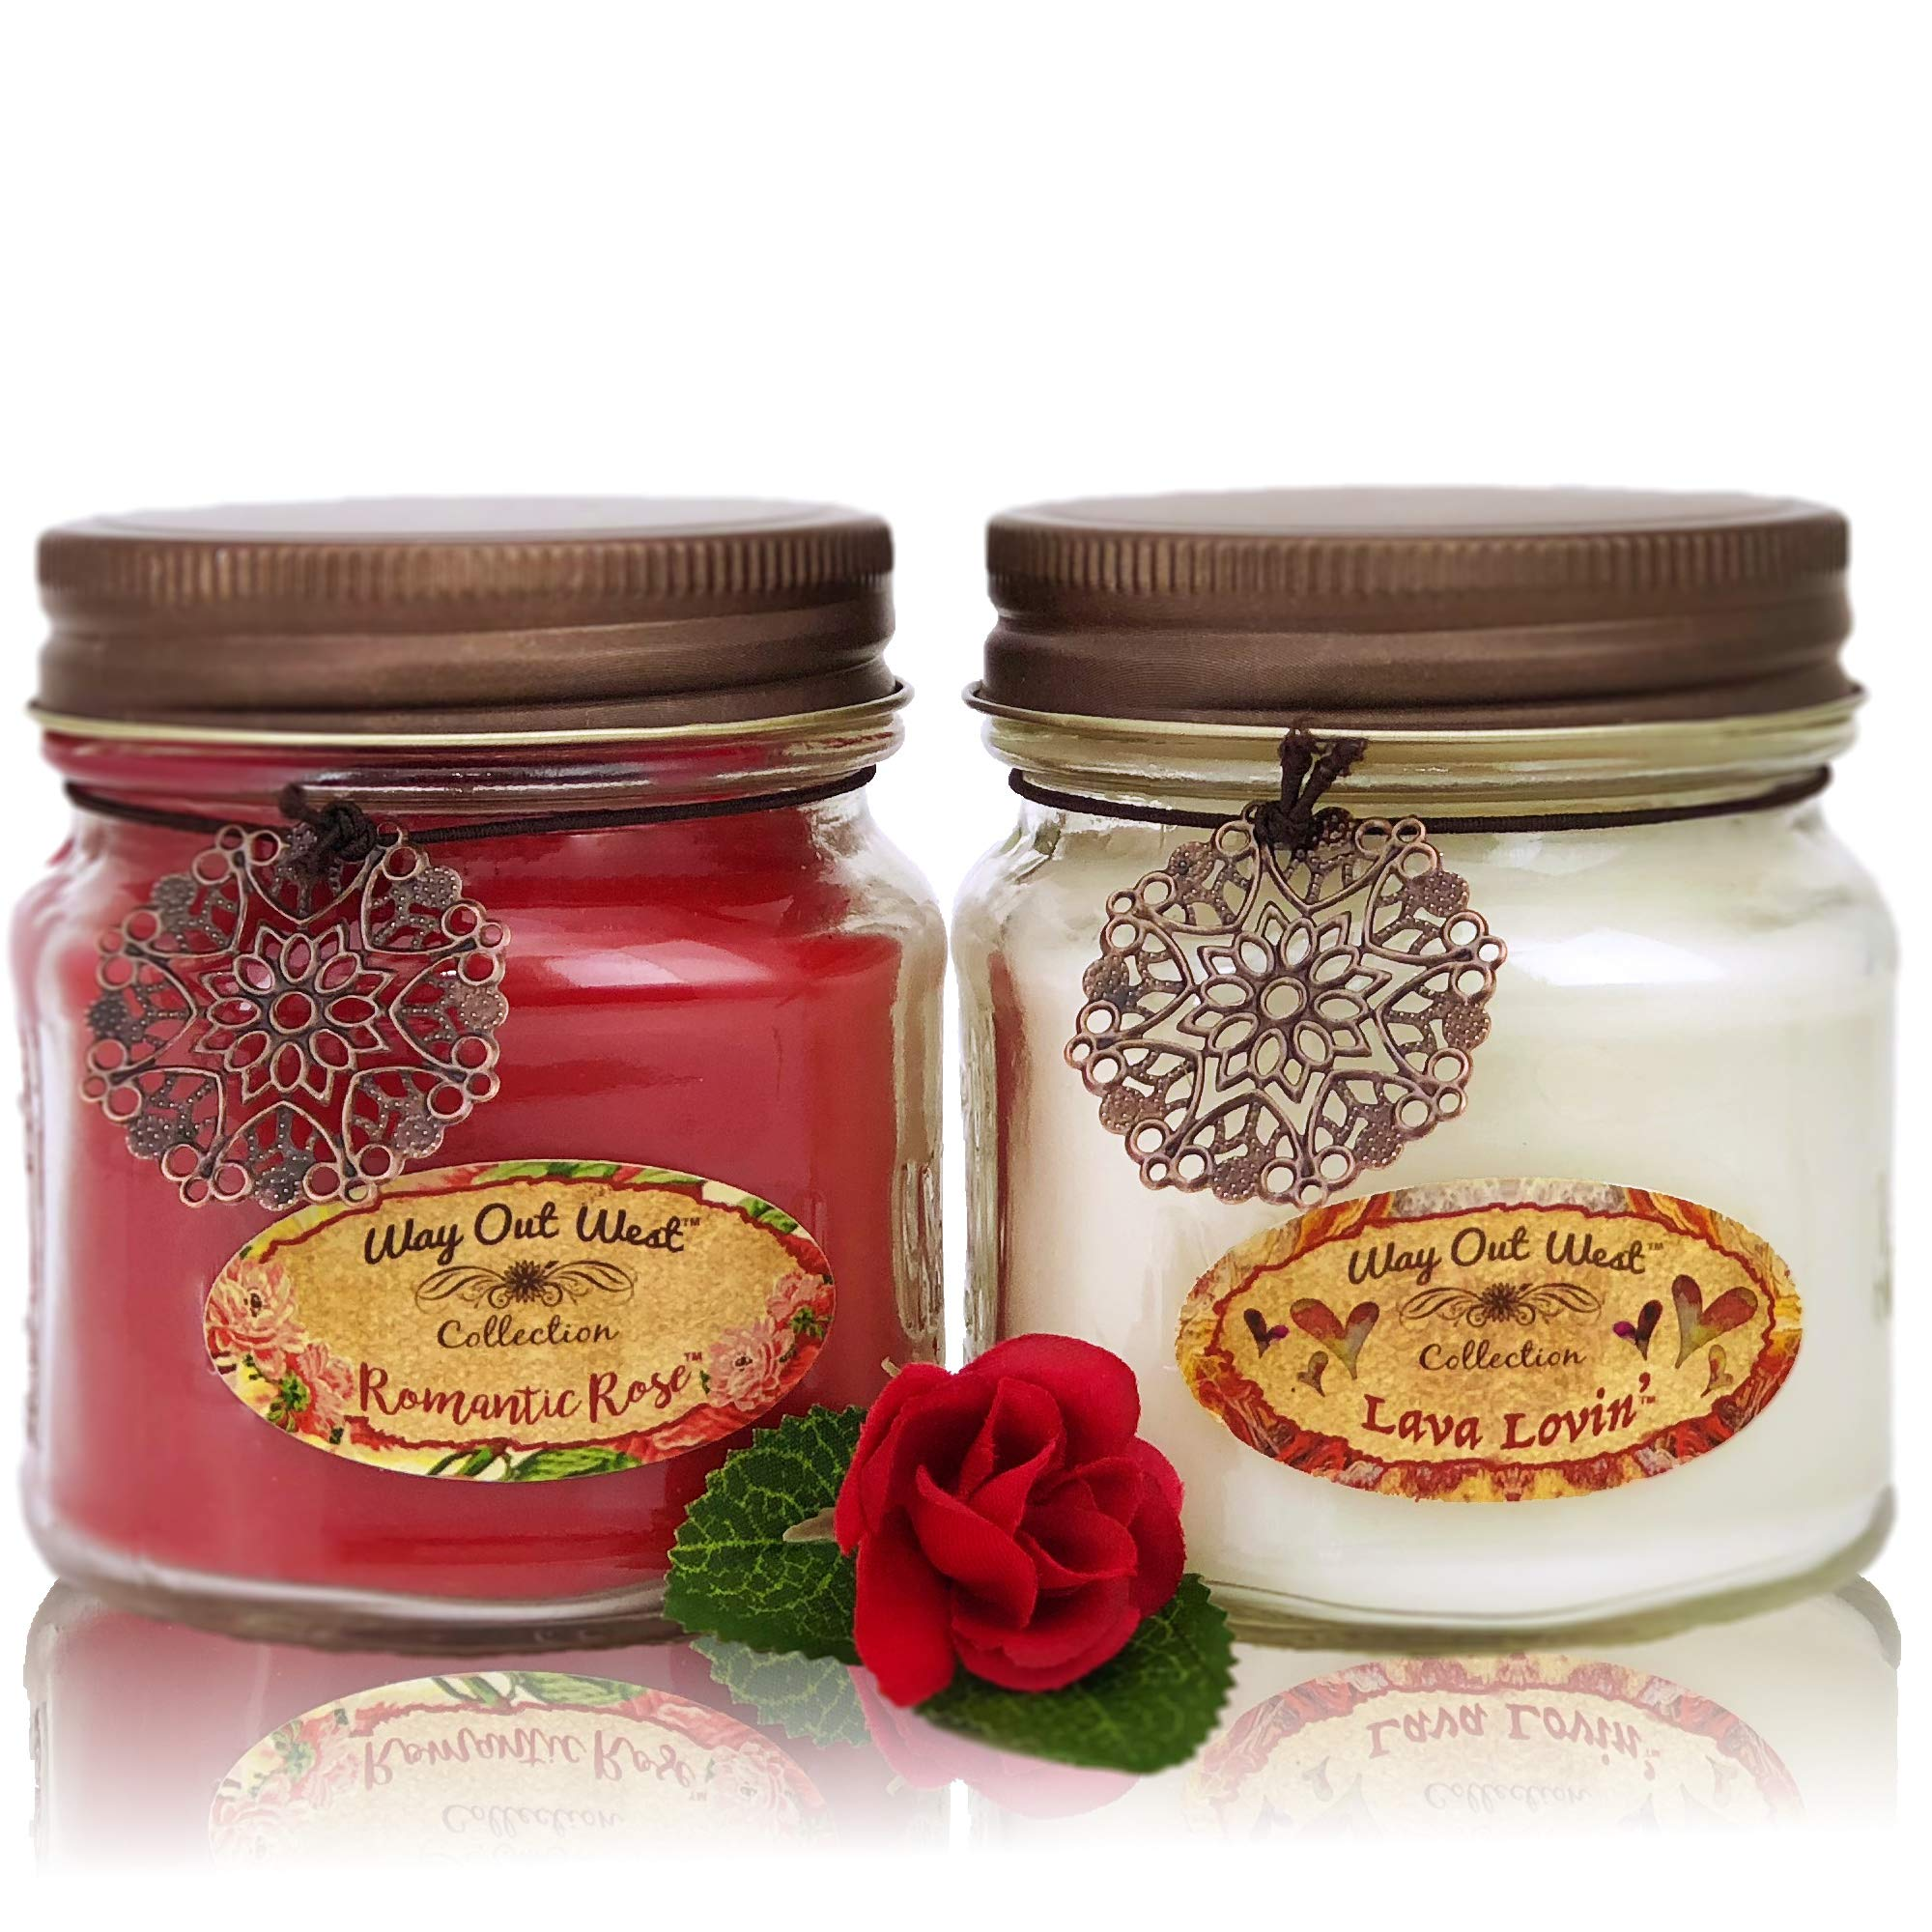 Way Out  West Romantic Jar Candles Scented Set of 2 - Soy Wax Blend- Fragrant, Romantic Rose & Lava Lovin' -Tropical Citrus- Best Gift Idea Anniversary Wedding Day - Made in USA Candles